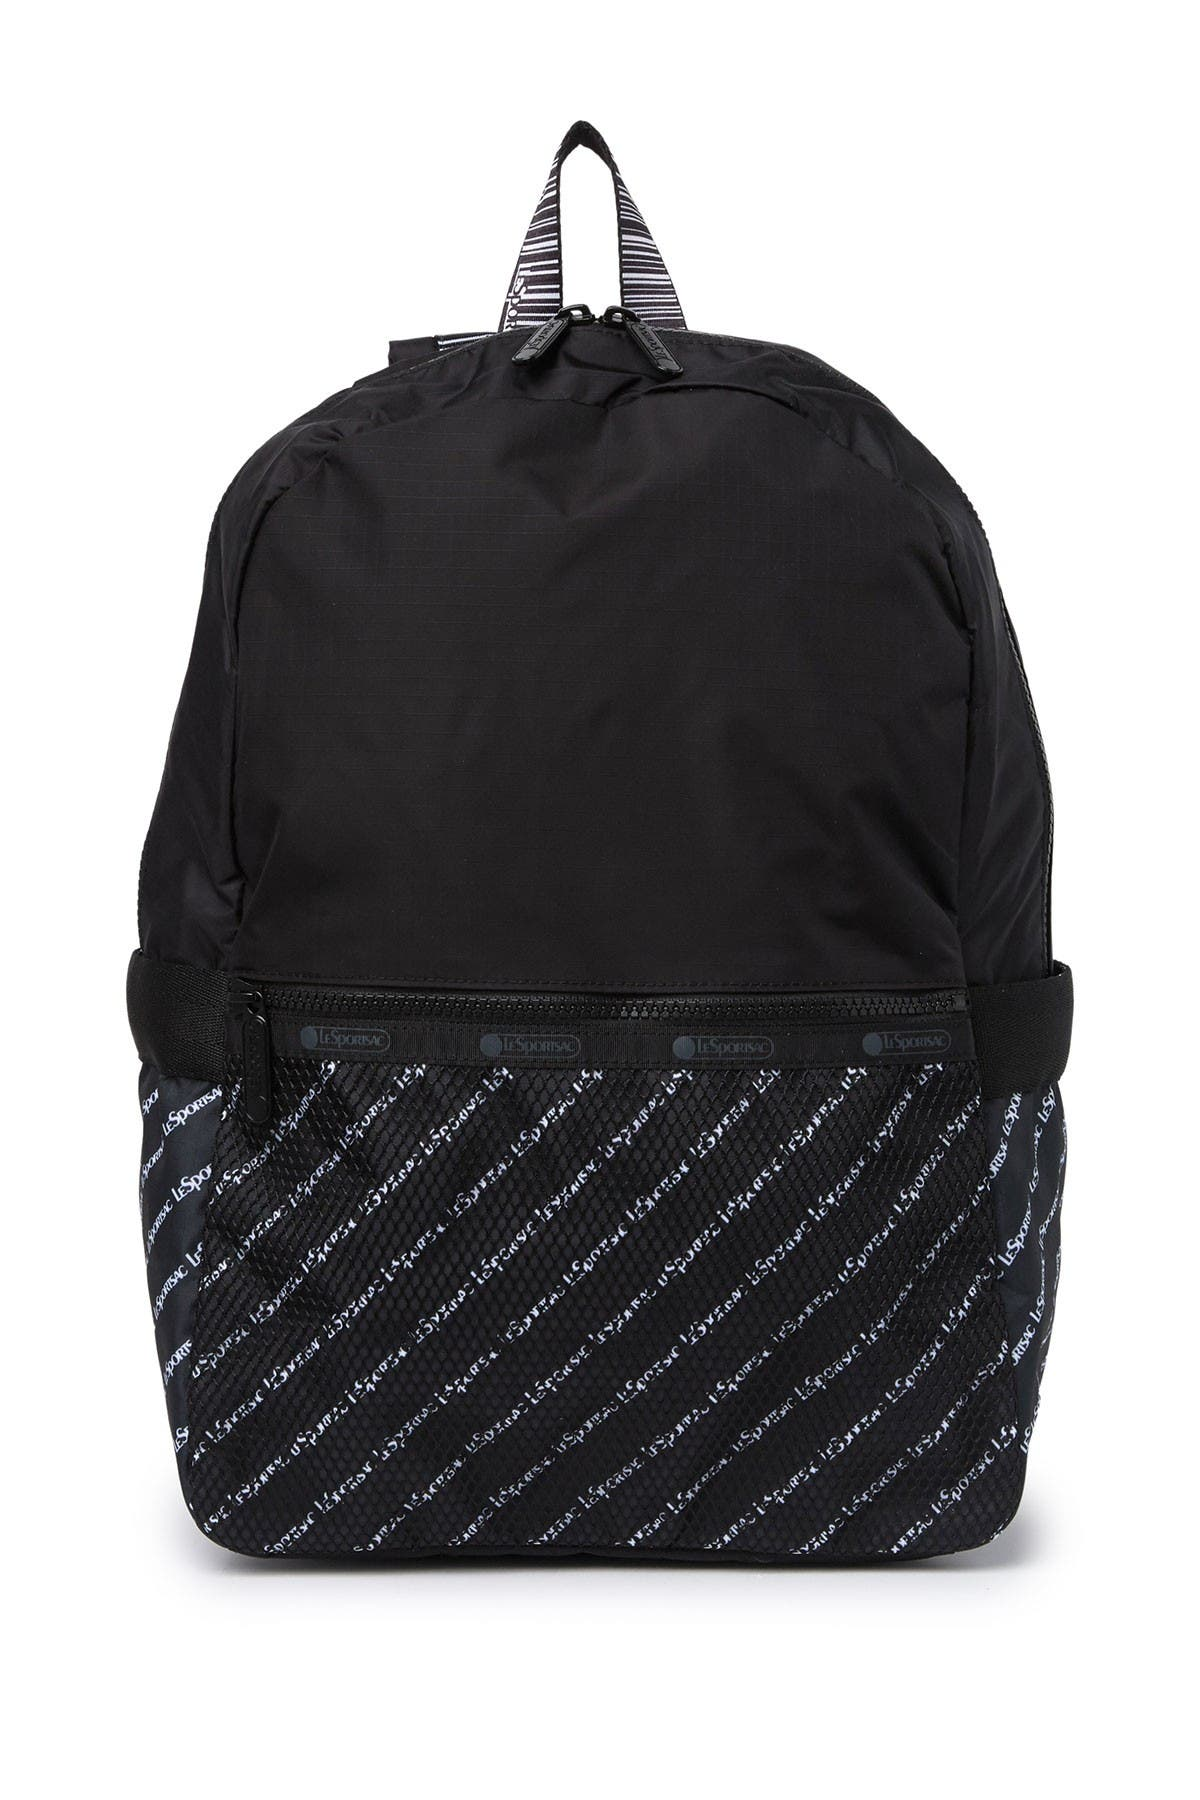 Image of LeSportsac Patterned Carrier Backpack